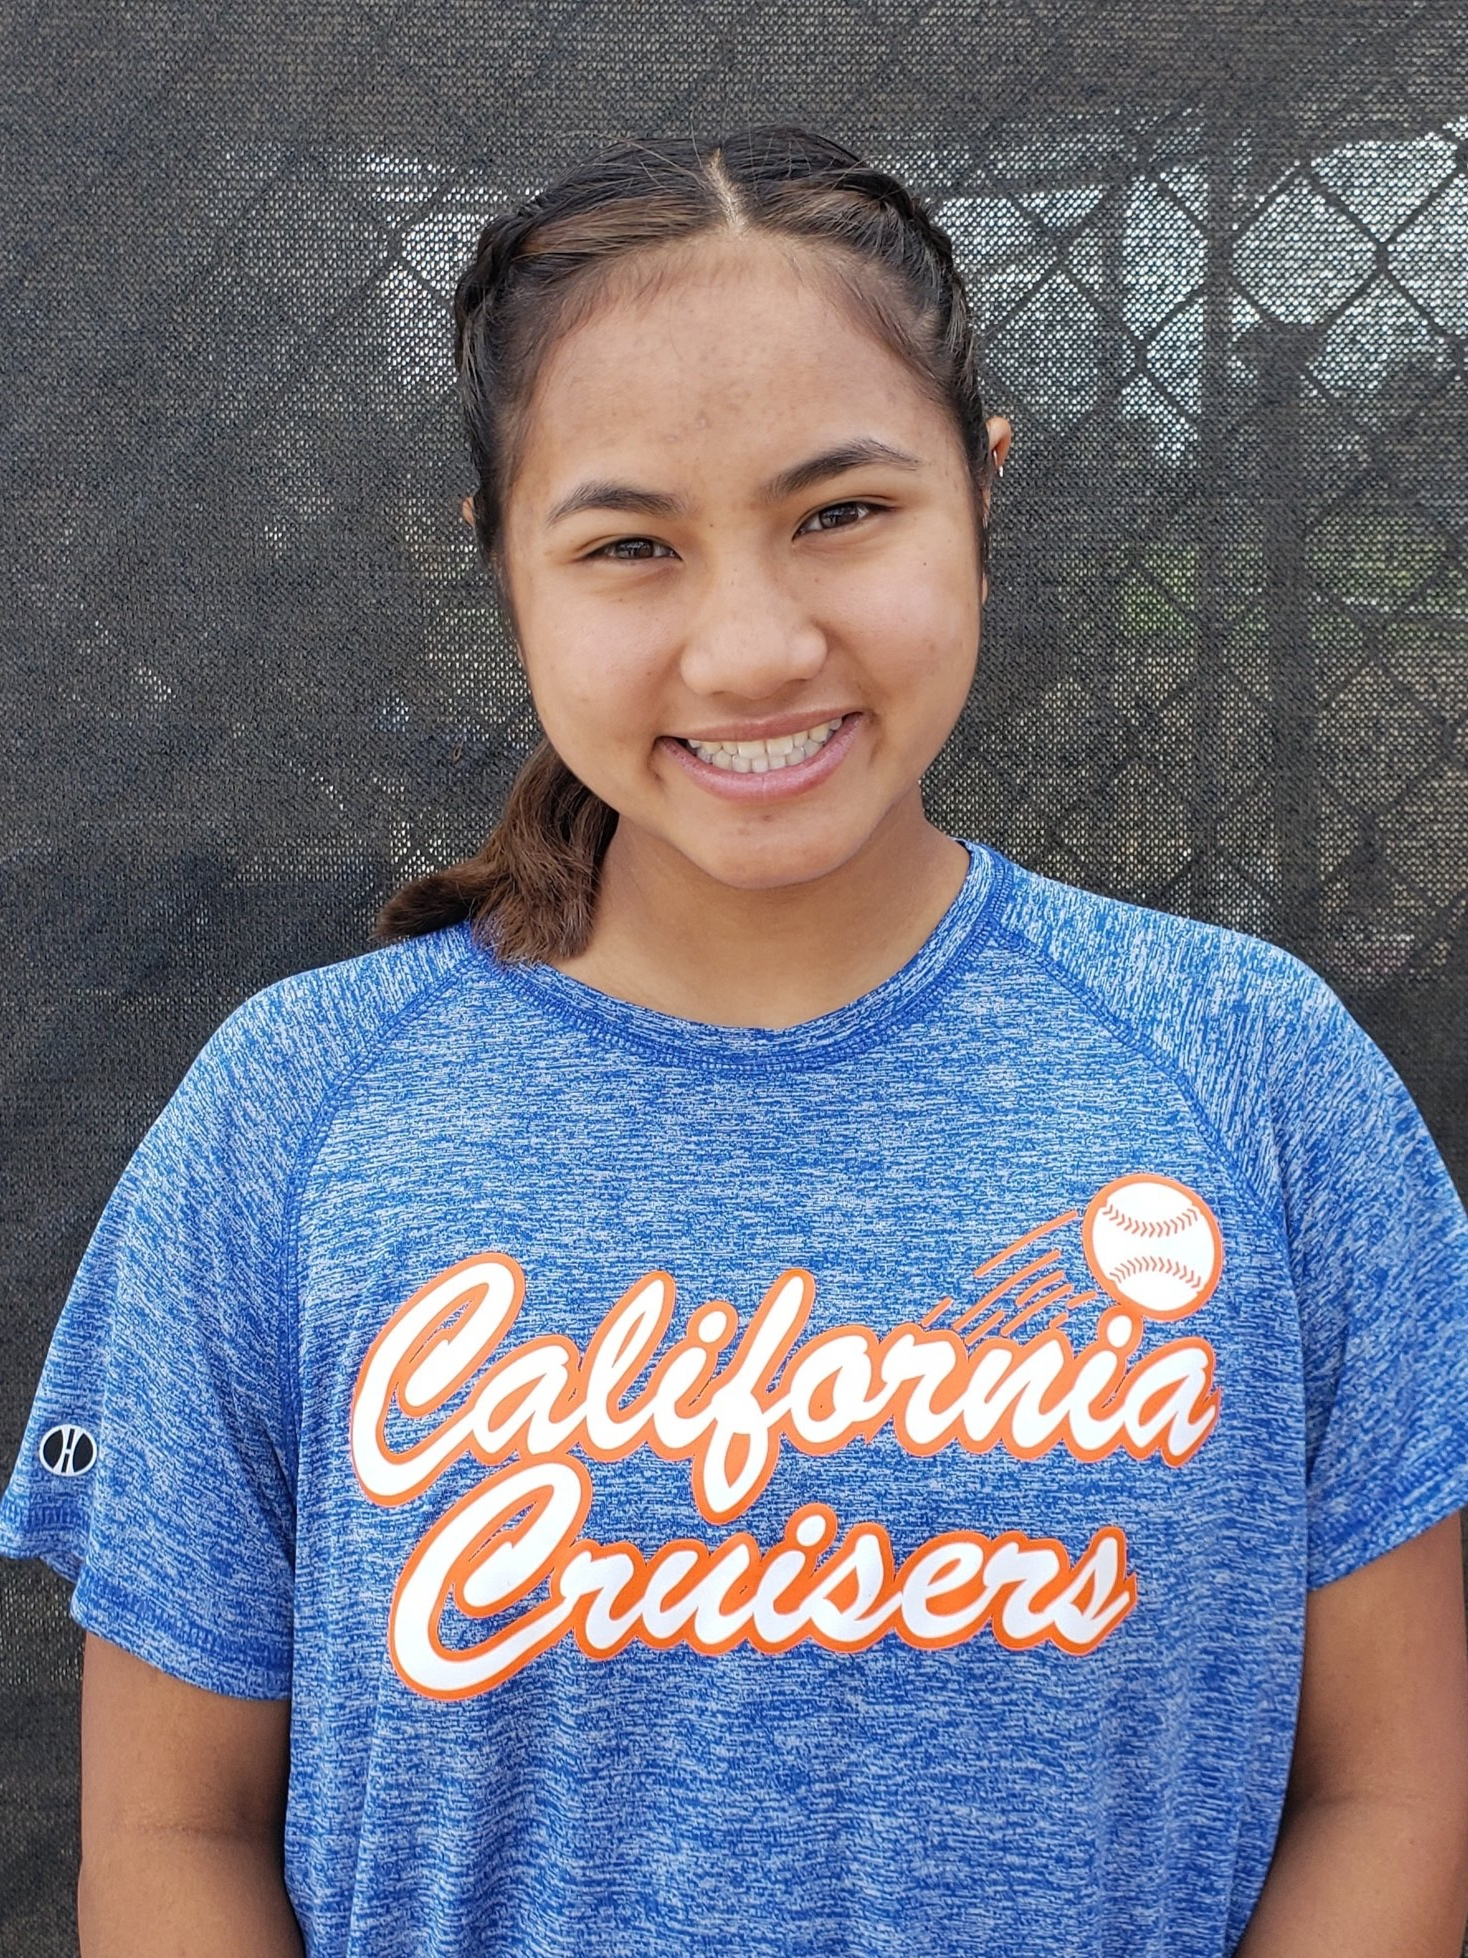 """#22 LAUREN LEJANO   Highlight Video: Coming Soon  Grad Year: 2021  Position(s): 2B/OF  B/T: L/R  Height: 5'2""""  High School: Cerritos  College: Uncommitted"""